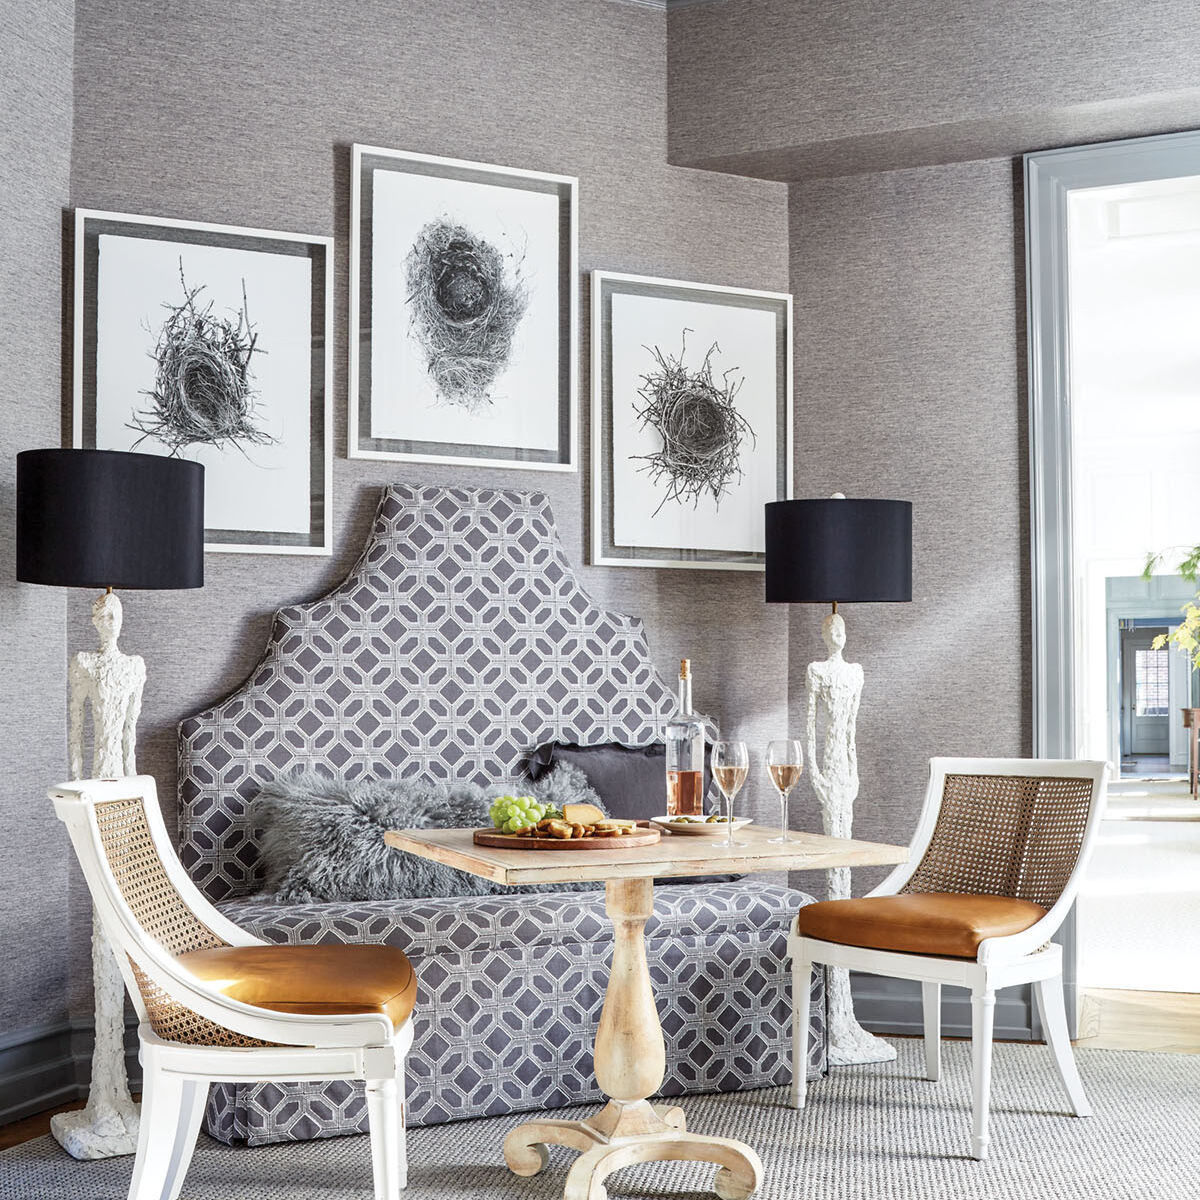 banquette with table and chairs